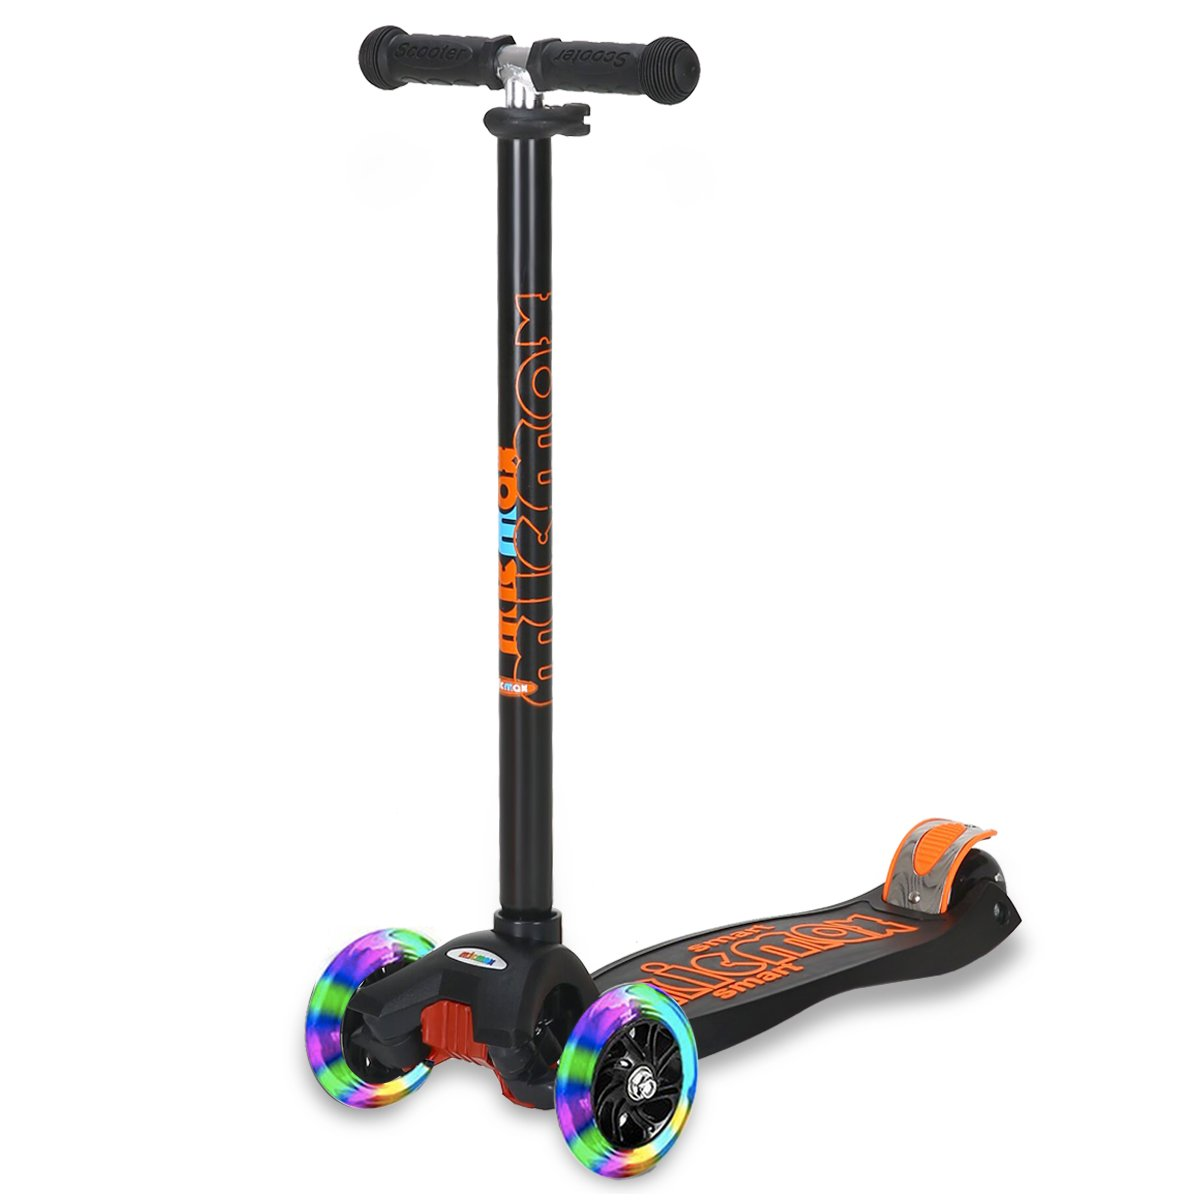 Banne Scooter Height Adjustable Lean to Steer Flashing PU Wheels 3 Wheel Kick Scooters for Kids Boys Girls (Black II)